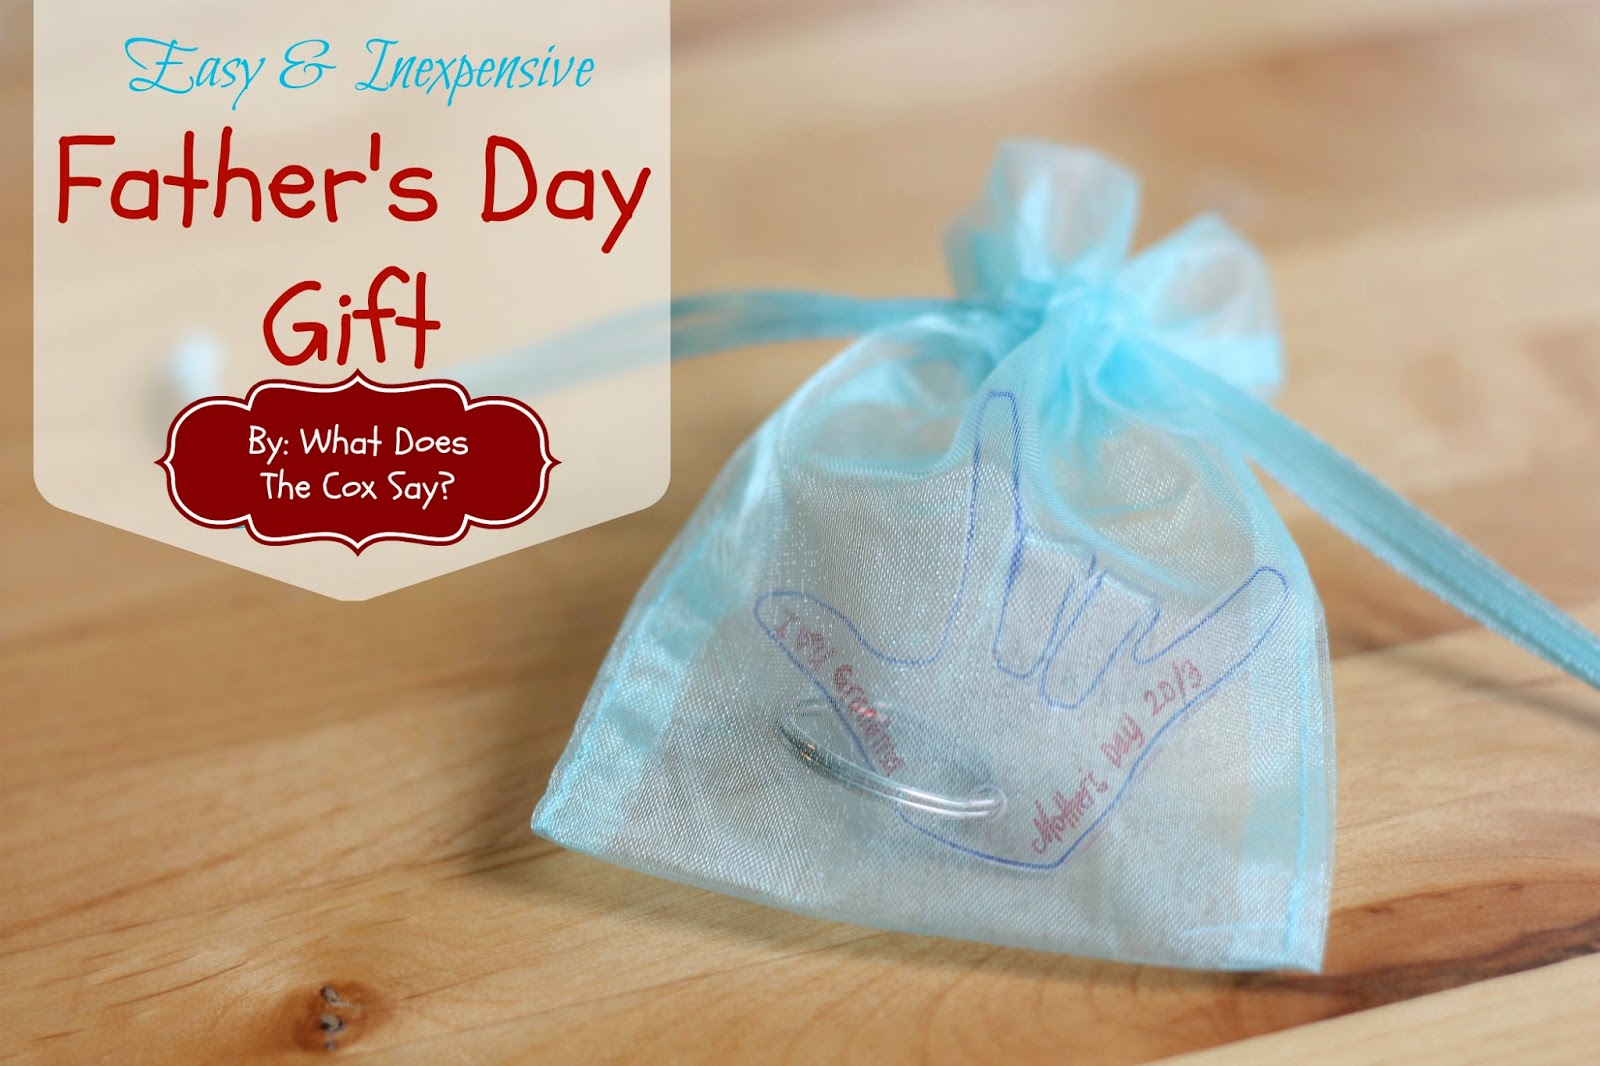 #fathersday #fathersdaygift